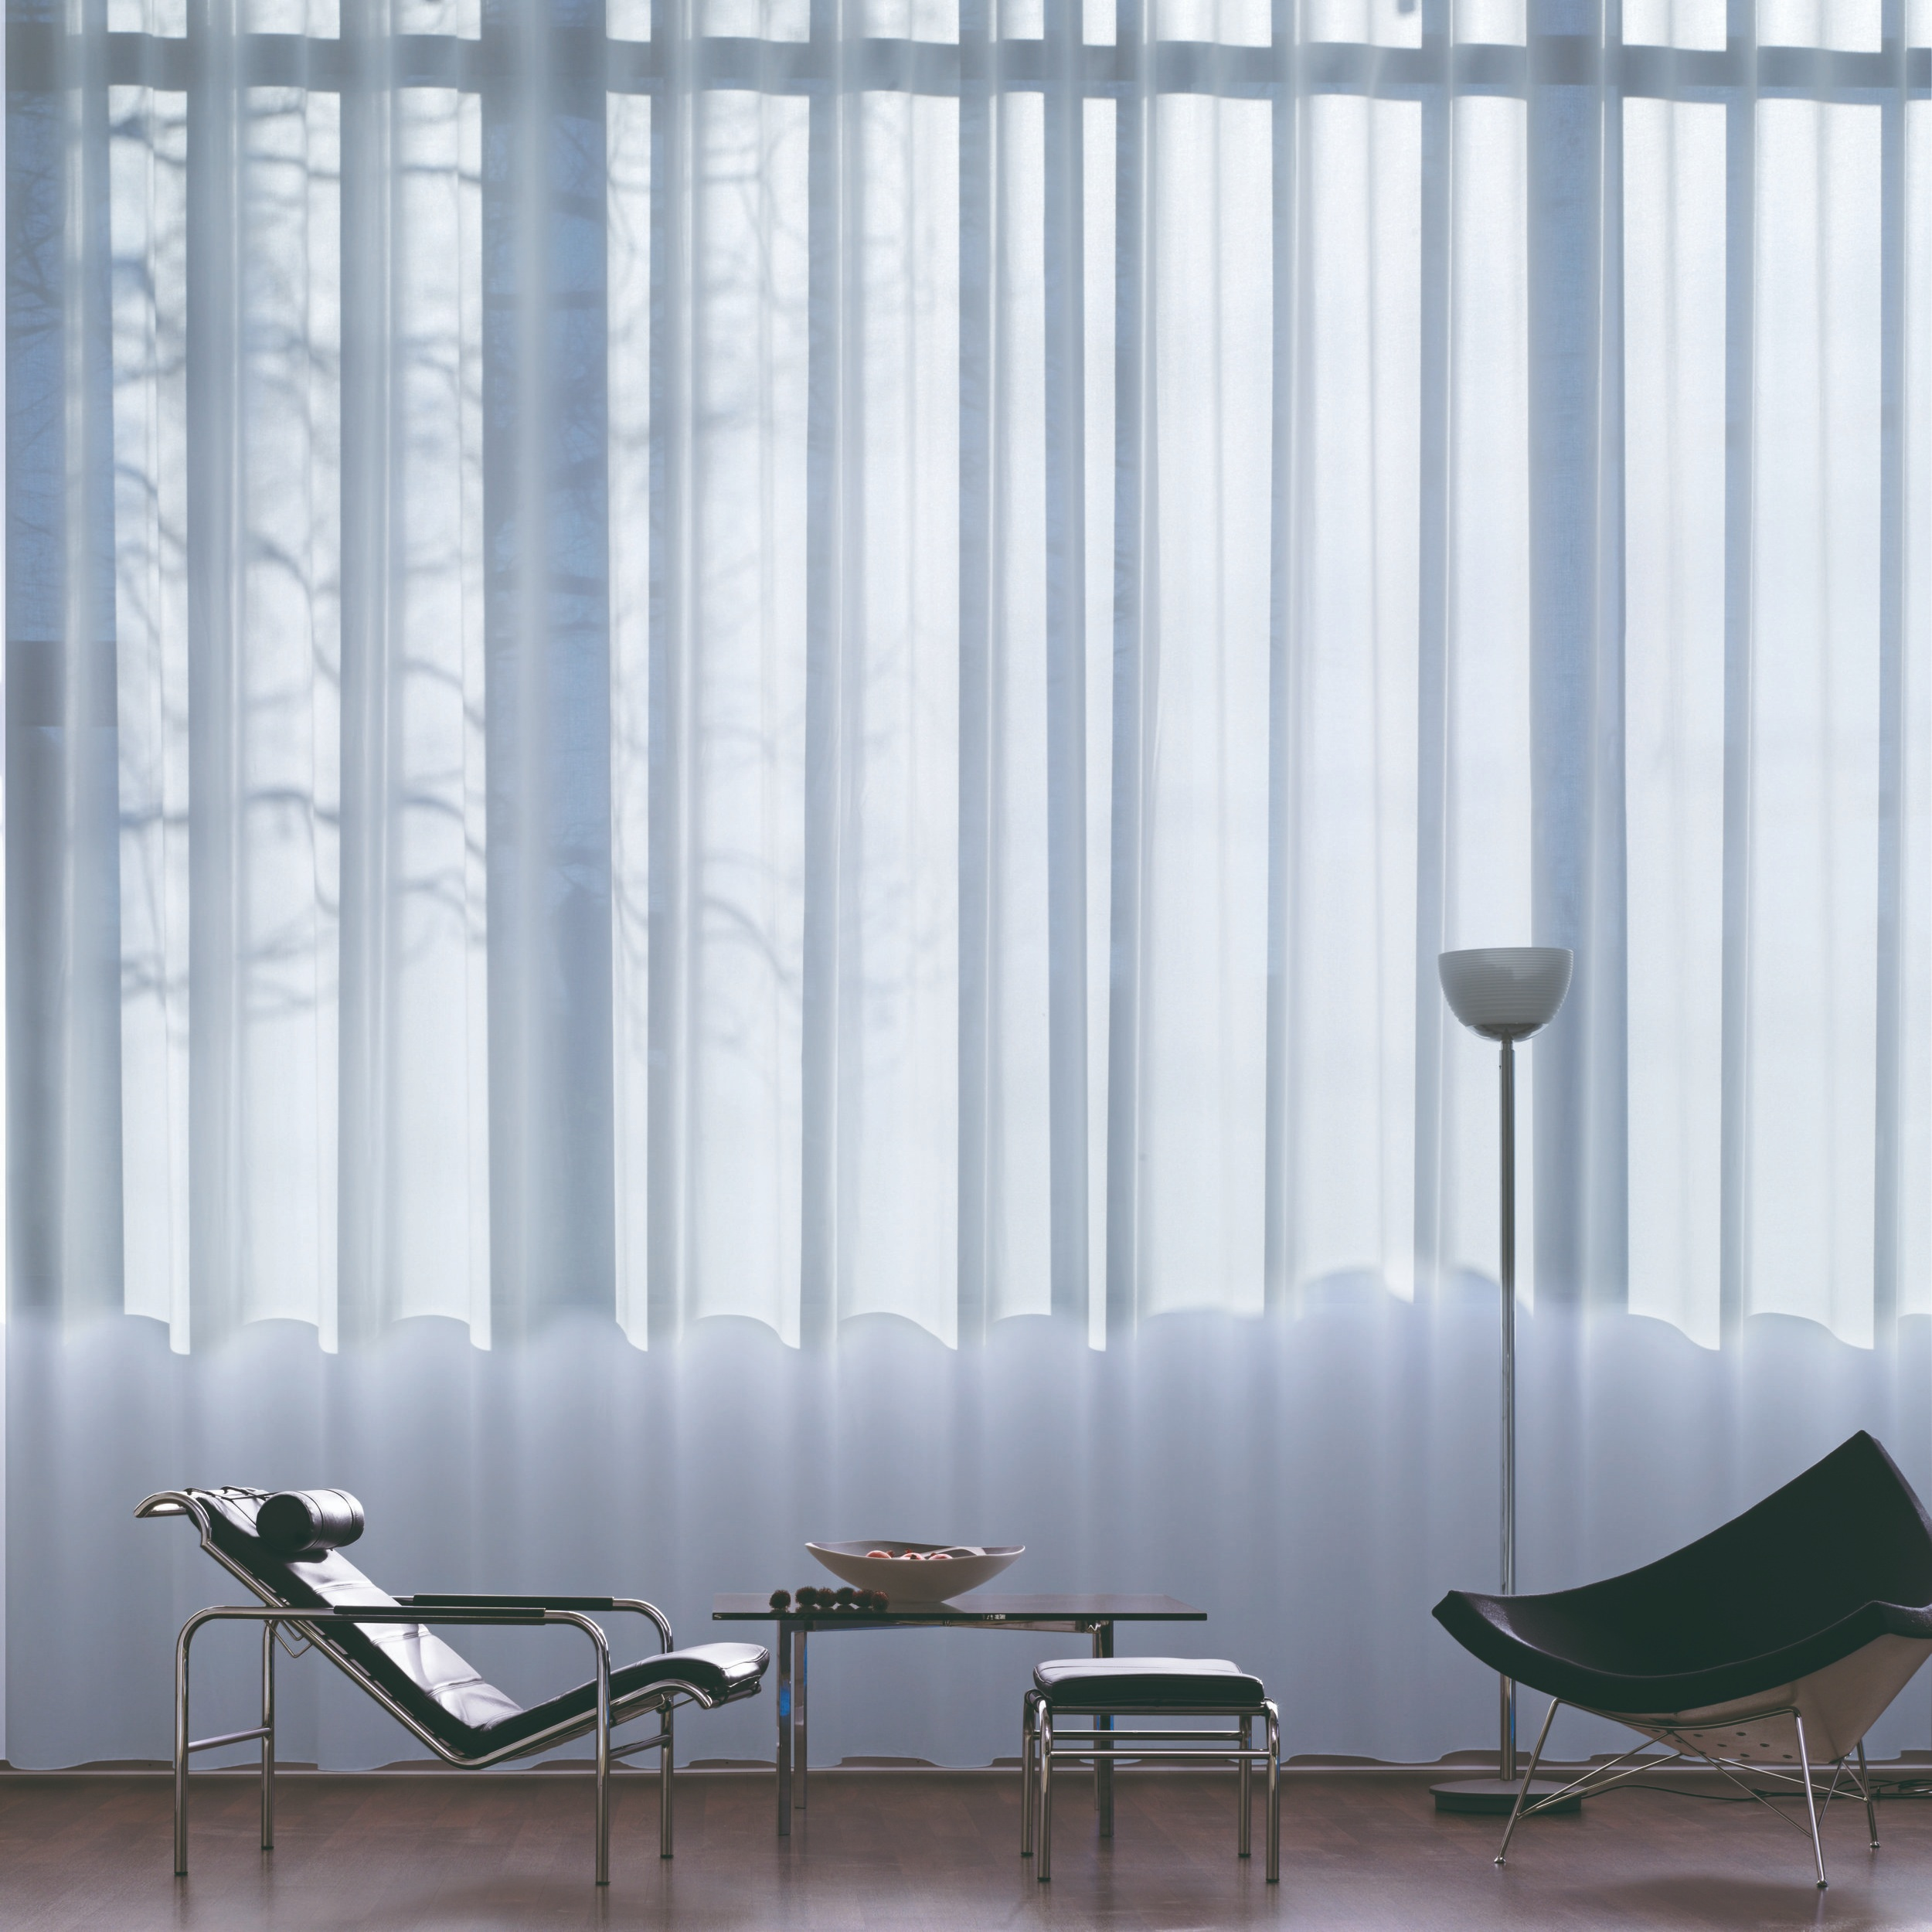 Window Dressings - Use bright white and neutral coloured window dressings in order to maximise the natural light coming in through your window. Darker dressings can stop light coming through and also create heavy shadows around the window.